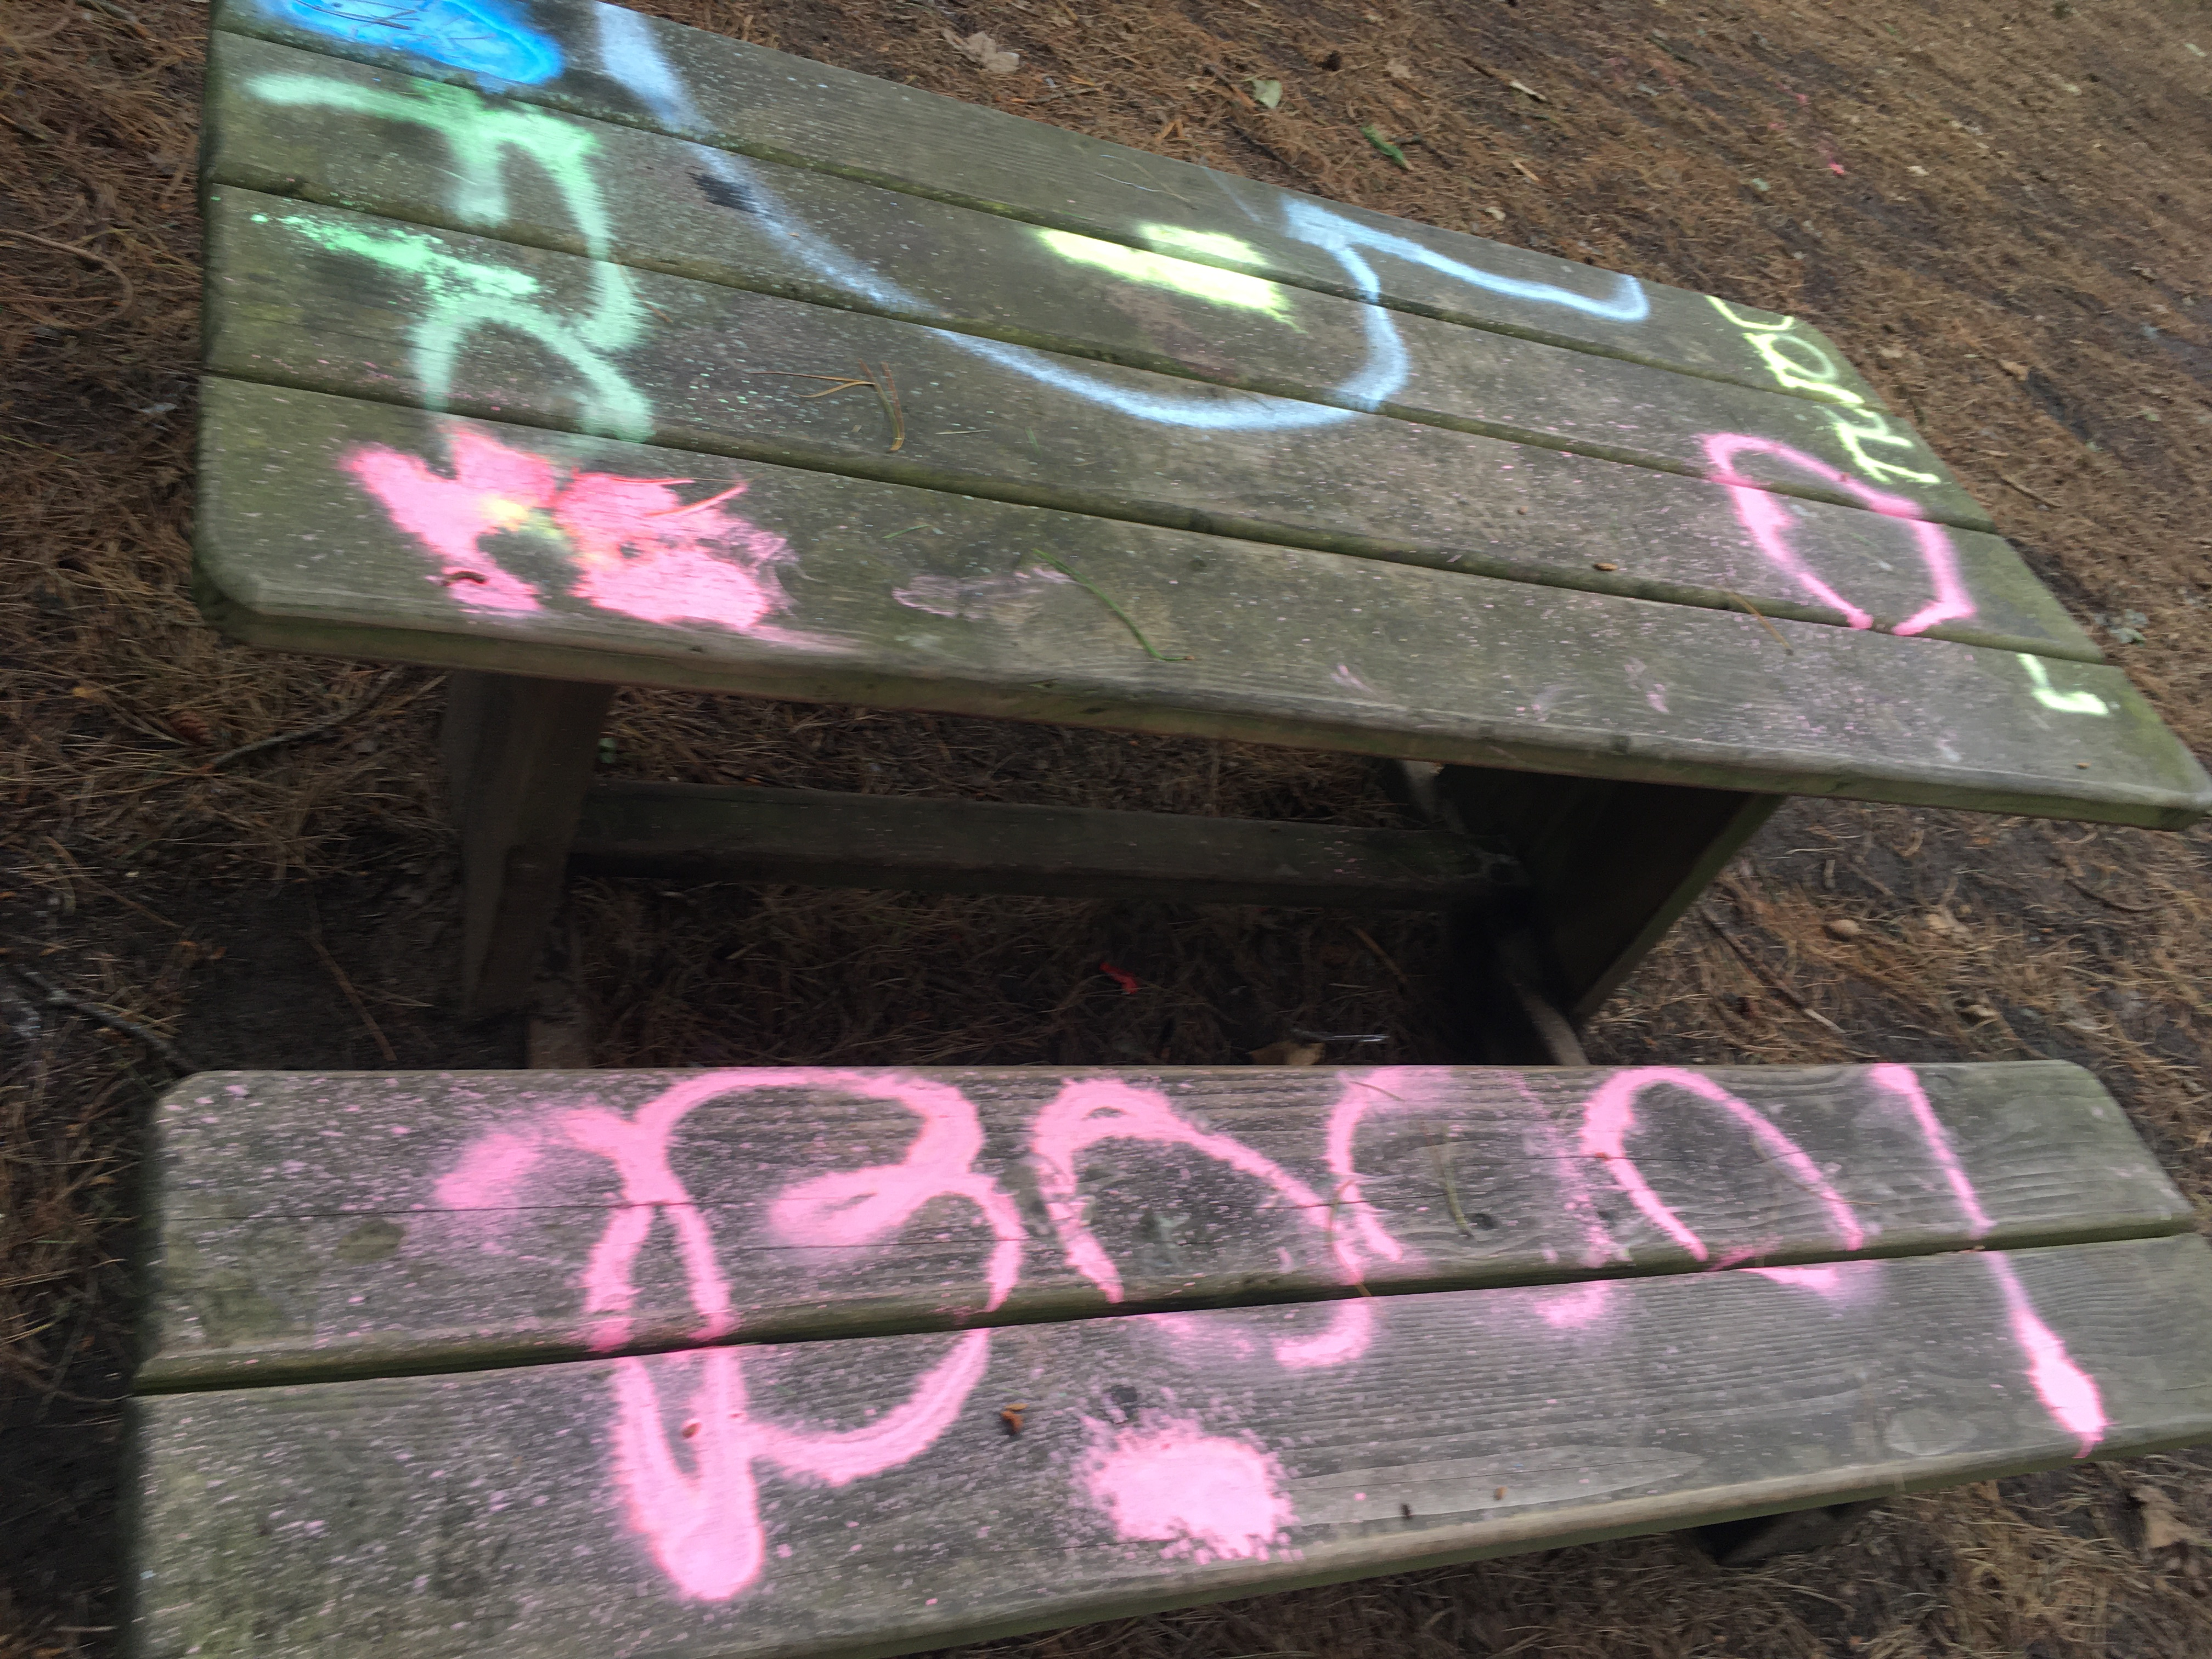 Graffiti yobs deface trees and benches